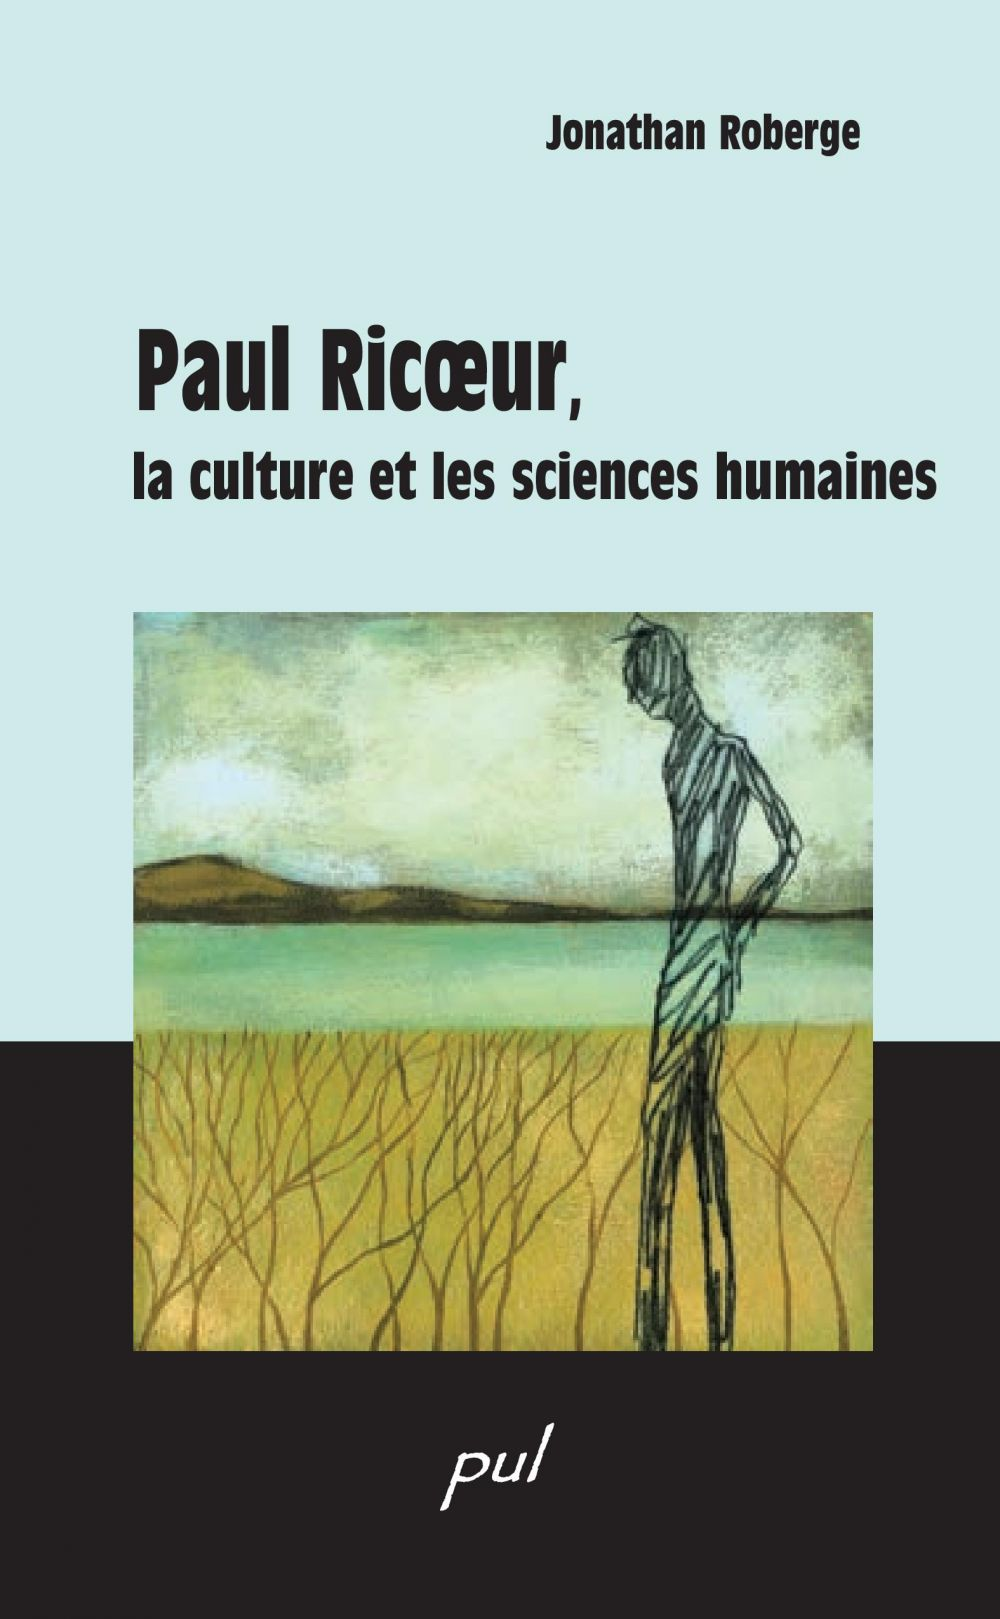 Paul Ricoeur, culture scienceshumaines